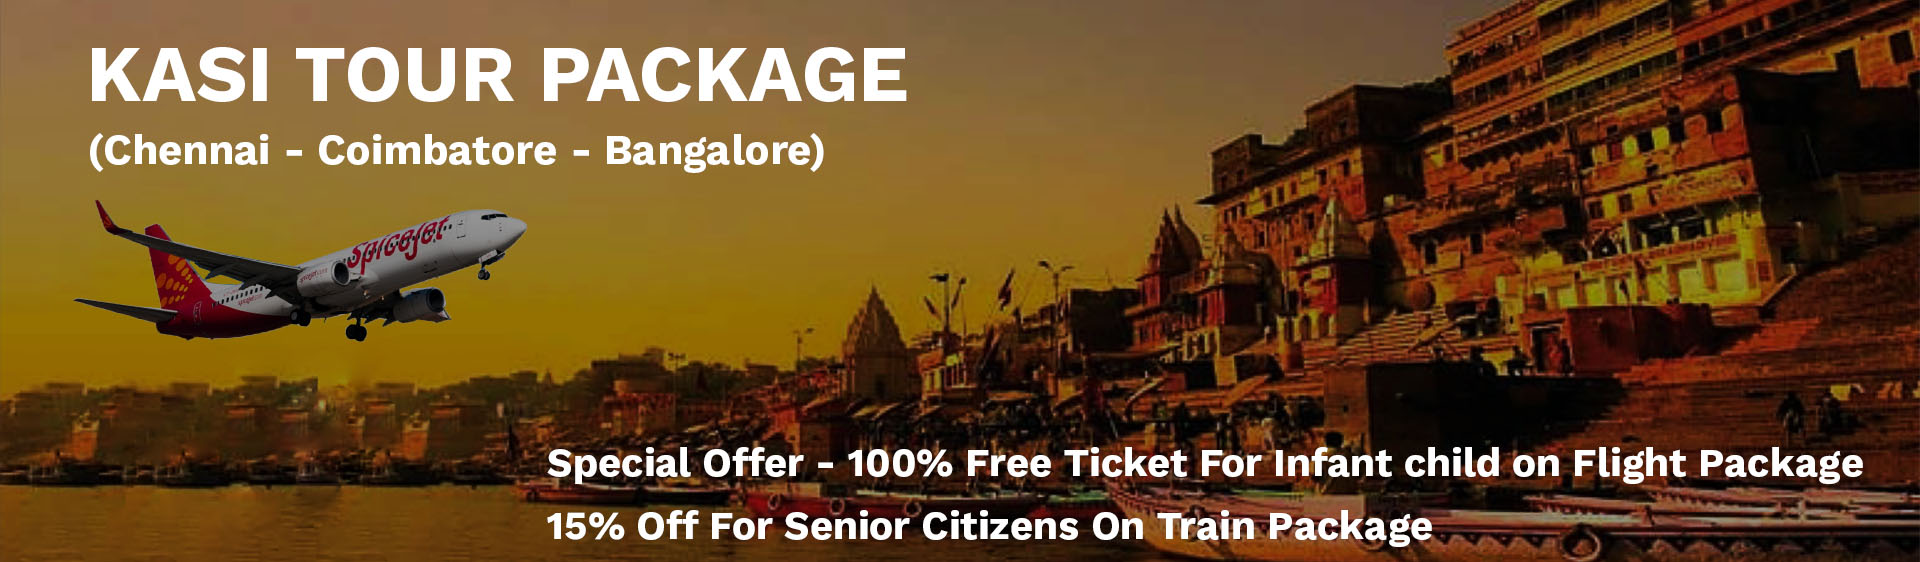 chennai to kasi flight package